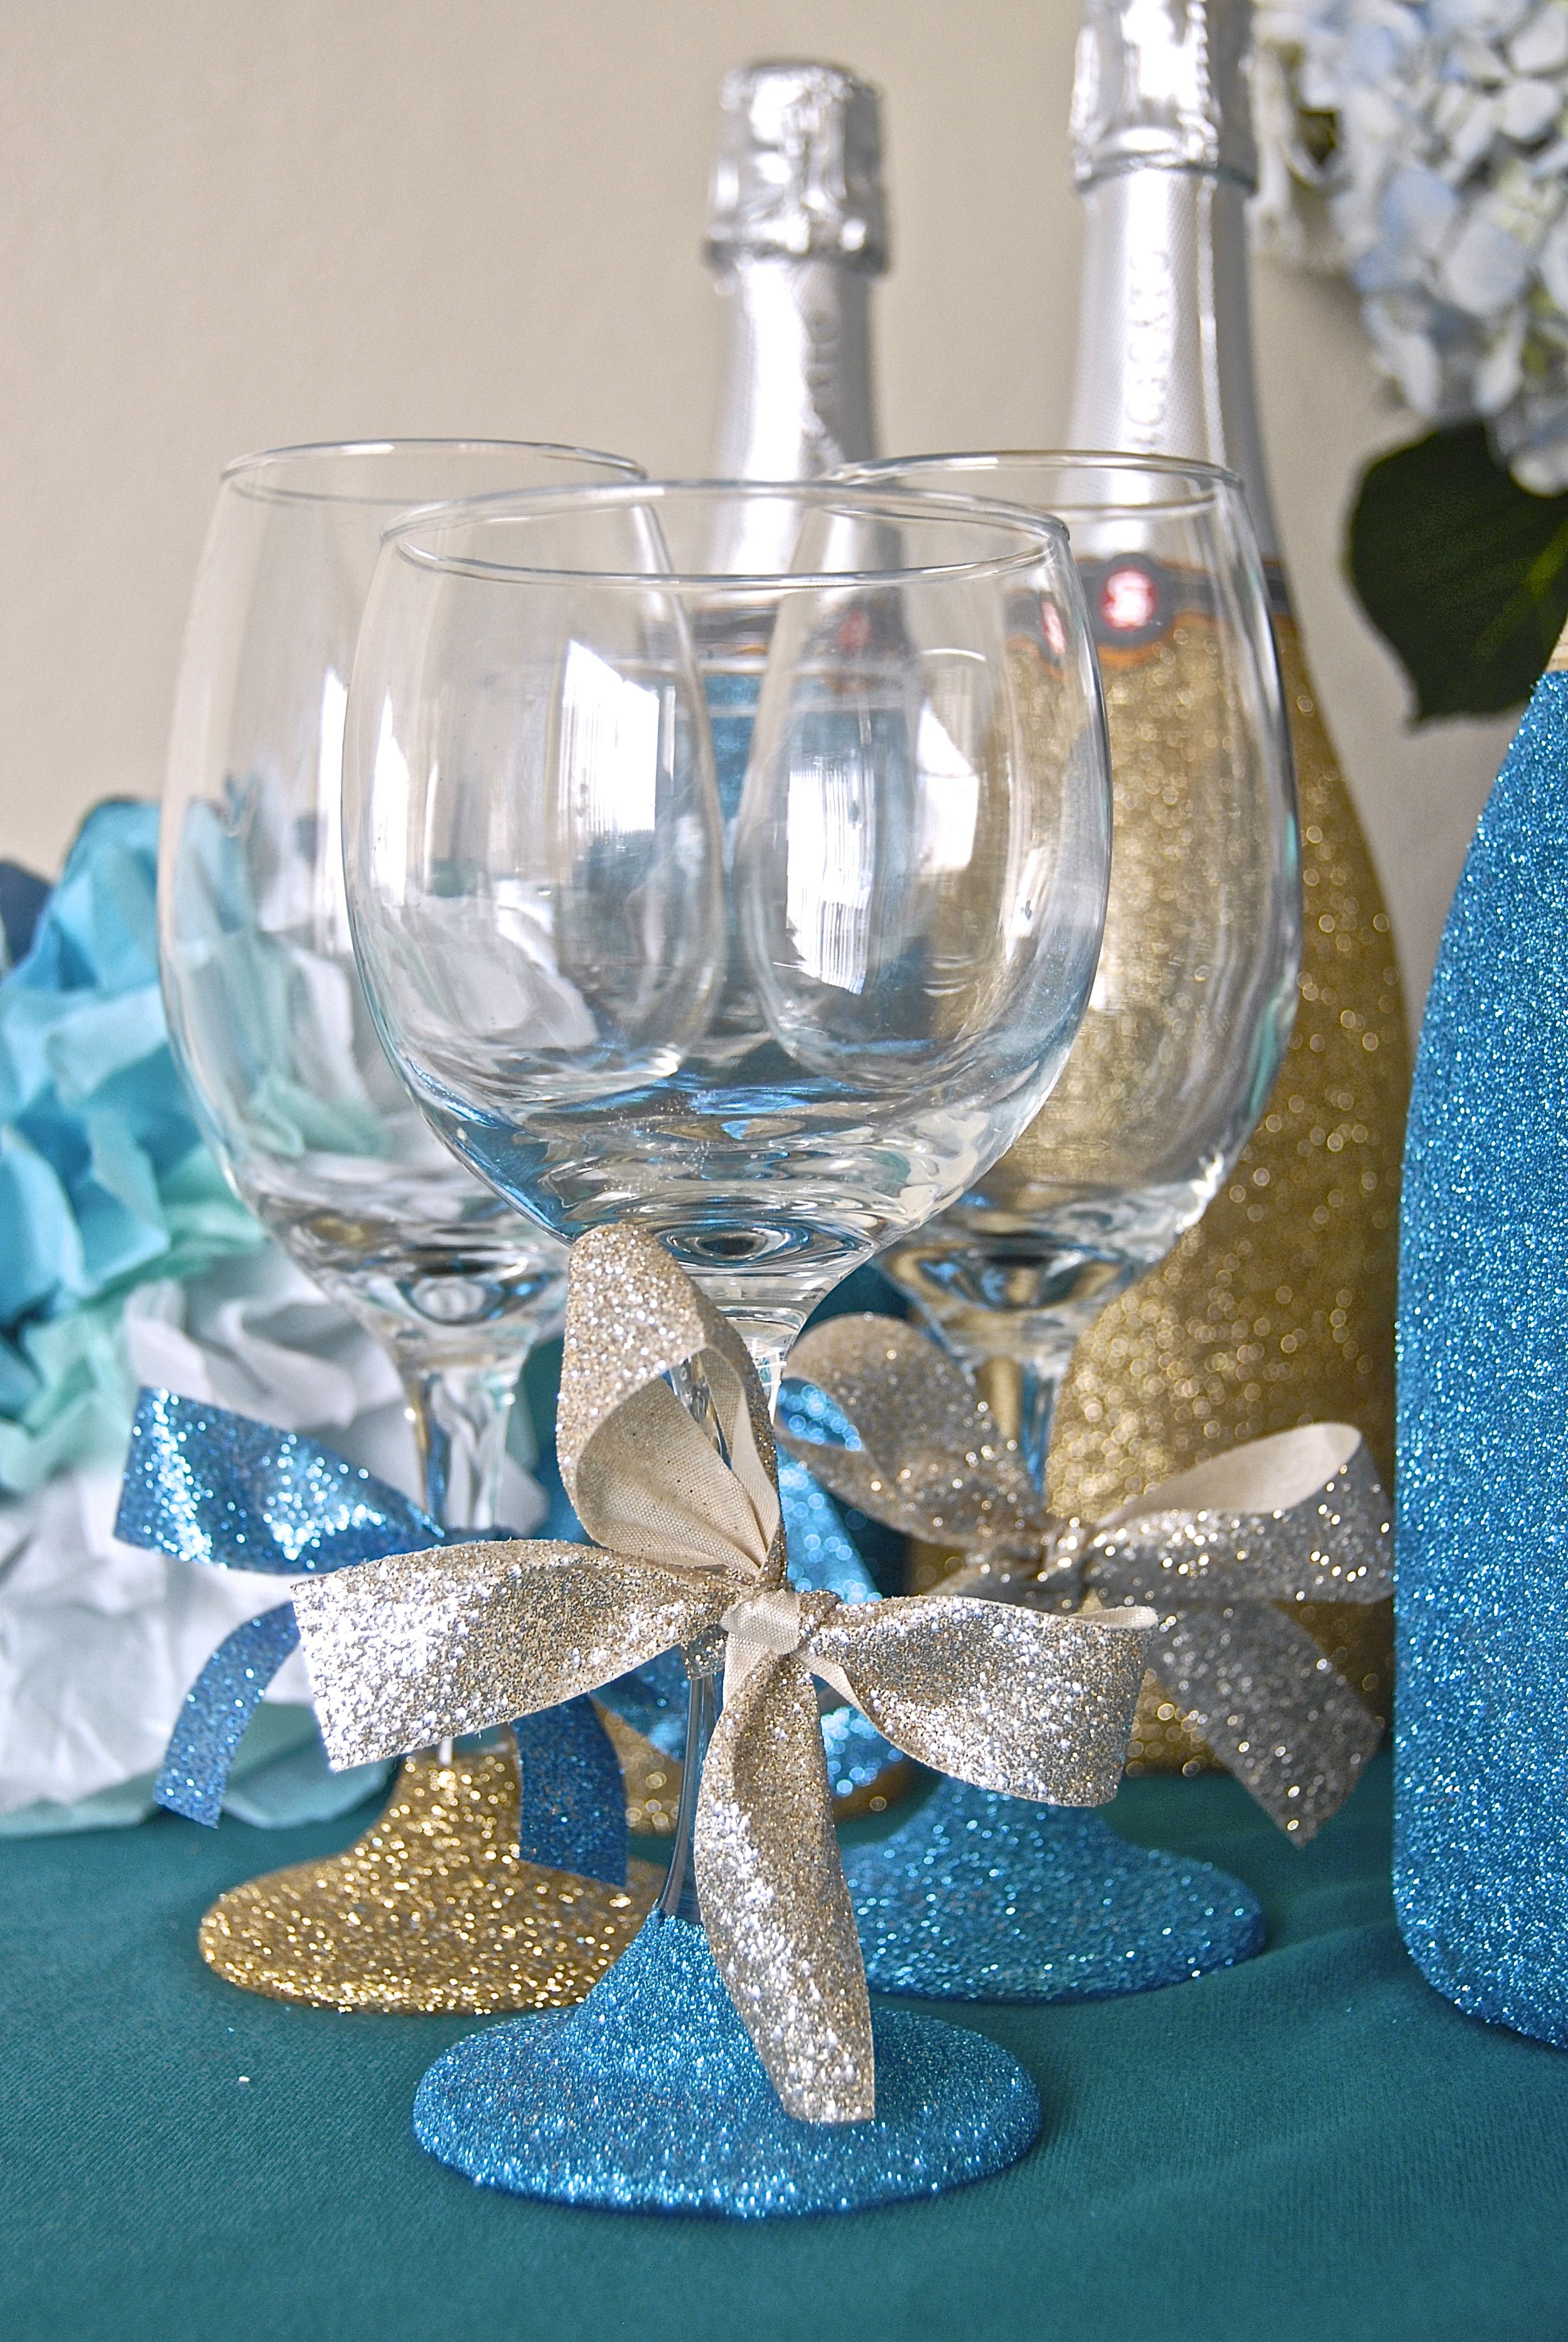 Diy Wedding Champagne Glasses Ideas Glitter Bridal Shower Favors Decorate Wine Glasses